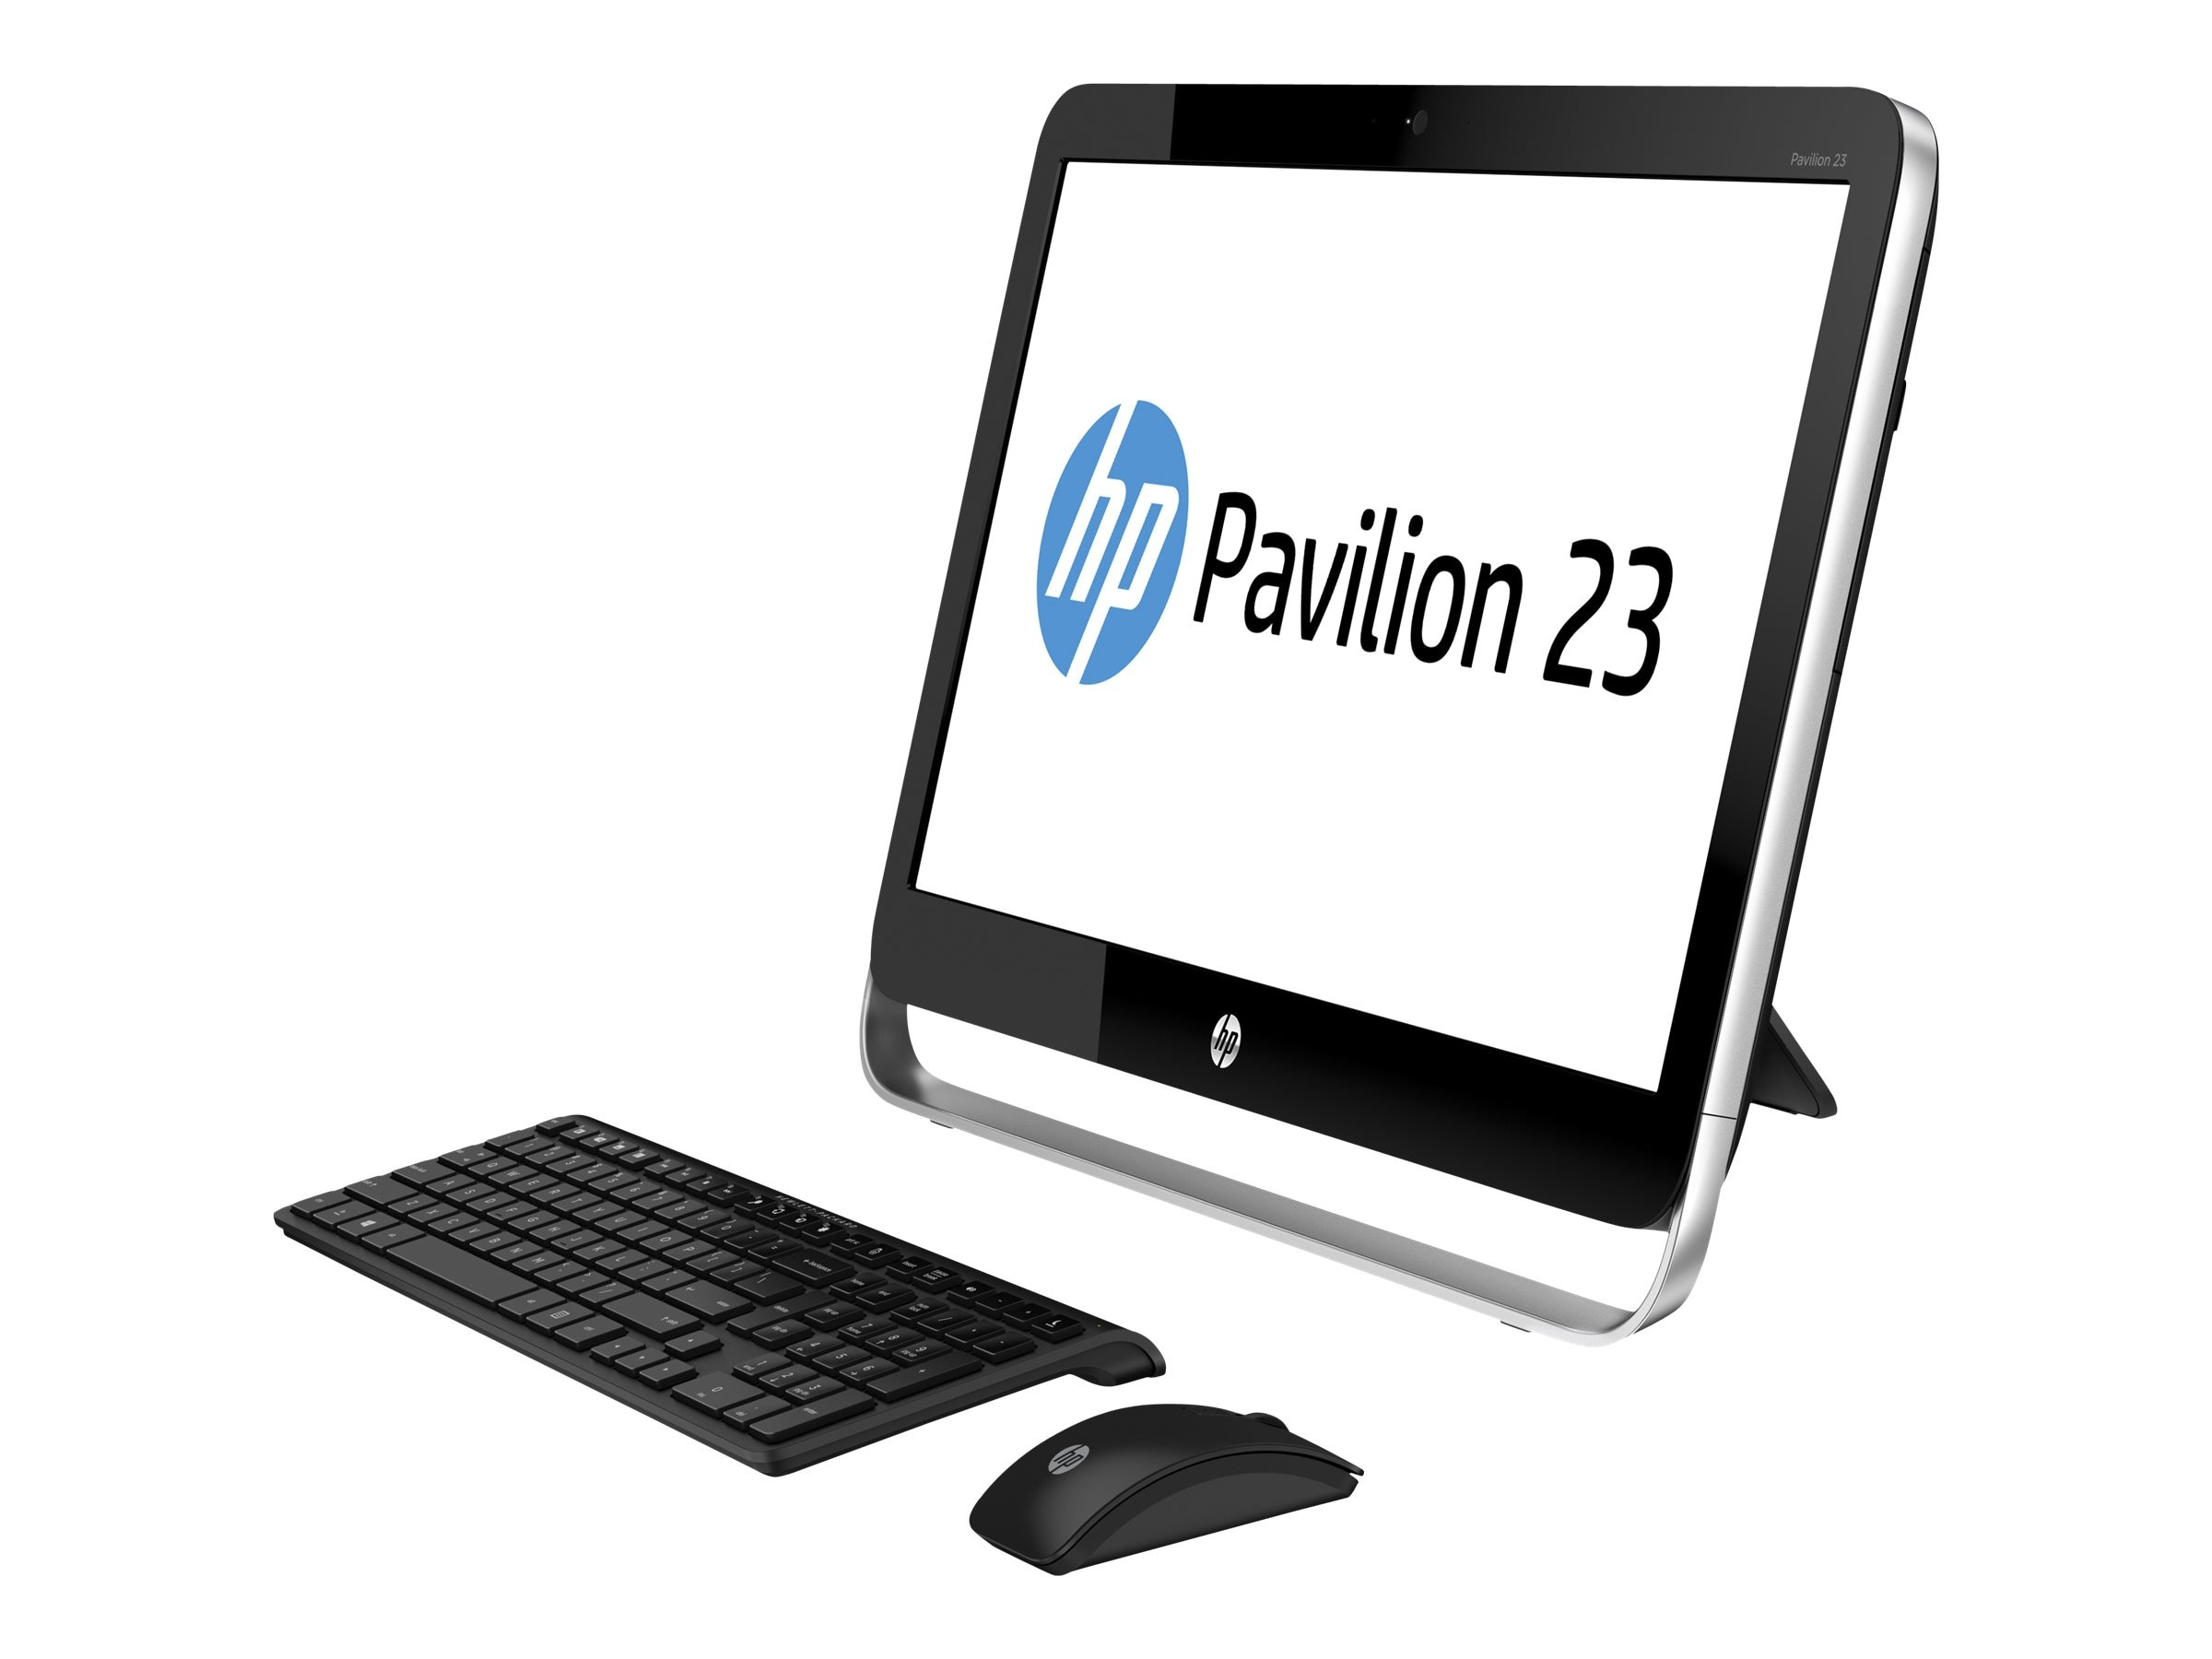 HP Pavilion 23-p112 AIO AMD A8-6410 2.0GHz 4GB 1TB DVD SM GbE abgn BT WC 23 FHD Touch W8.164, J4X01AA#ABA, 17826618, Desktops - All-in-One